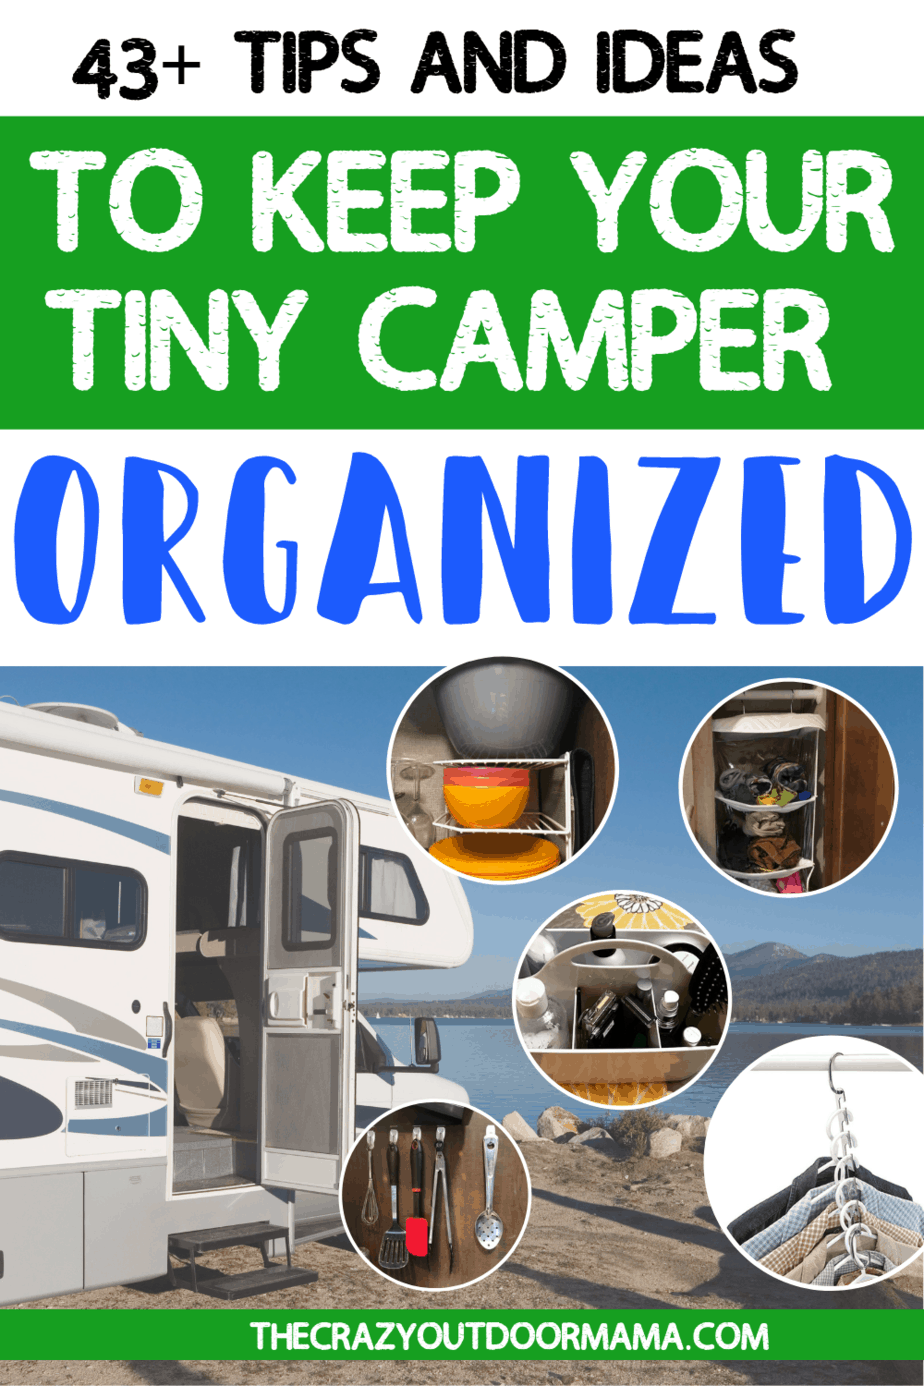 61 Best Rv Organization Accessories And Products Of 2020 2020 The Crazy Outdoor Mama Rv Organization Travel Trailer Camping Camping Organization